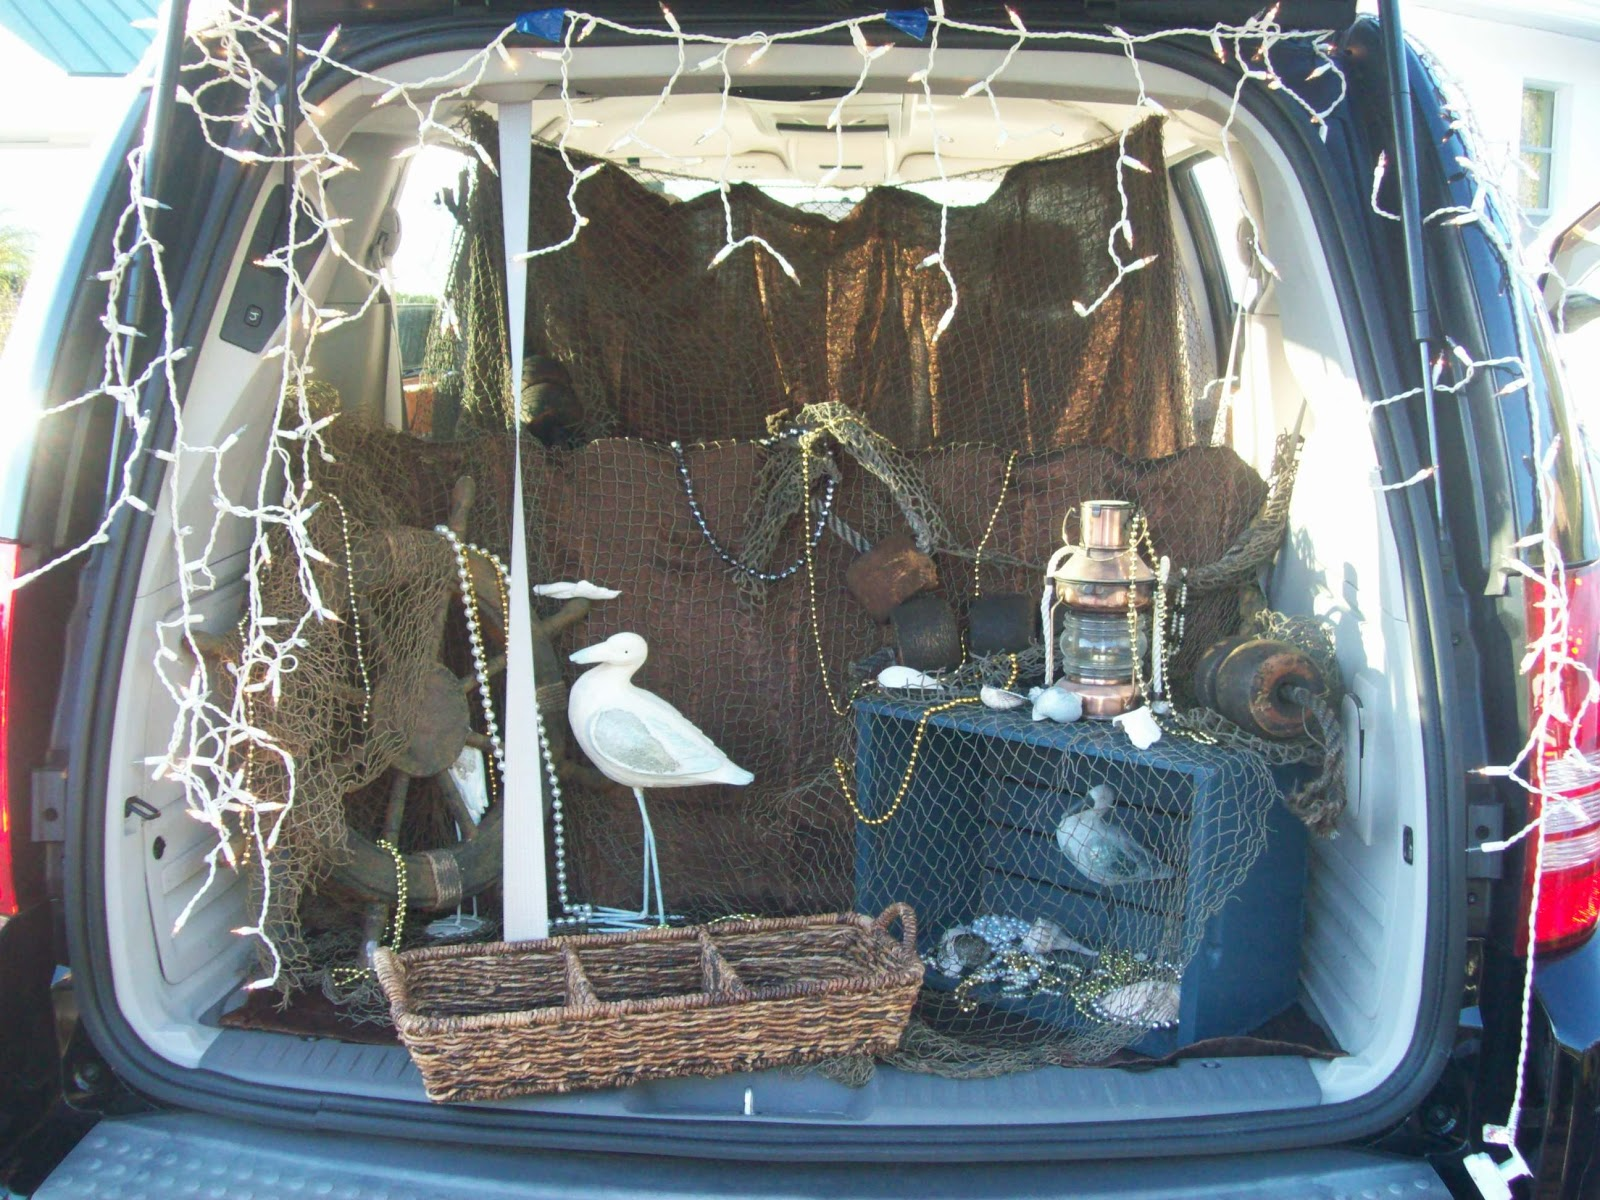 : trunk or treat ideas for decorating - www.pureclipart.com